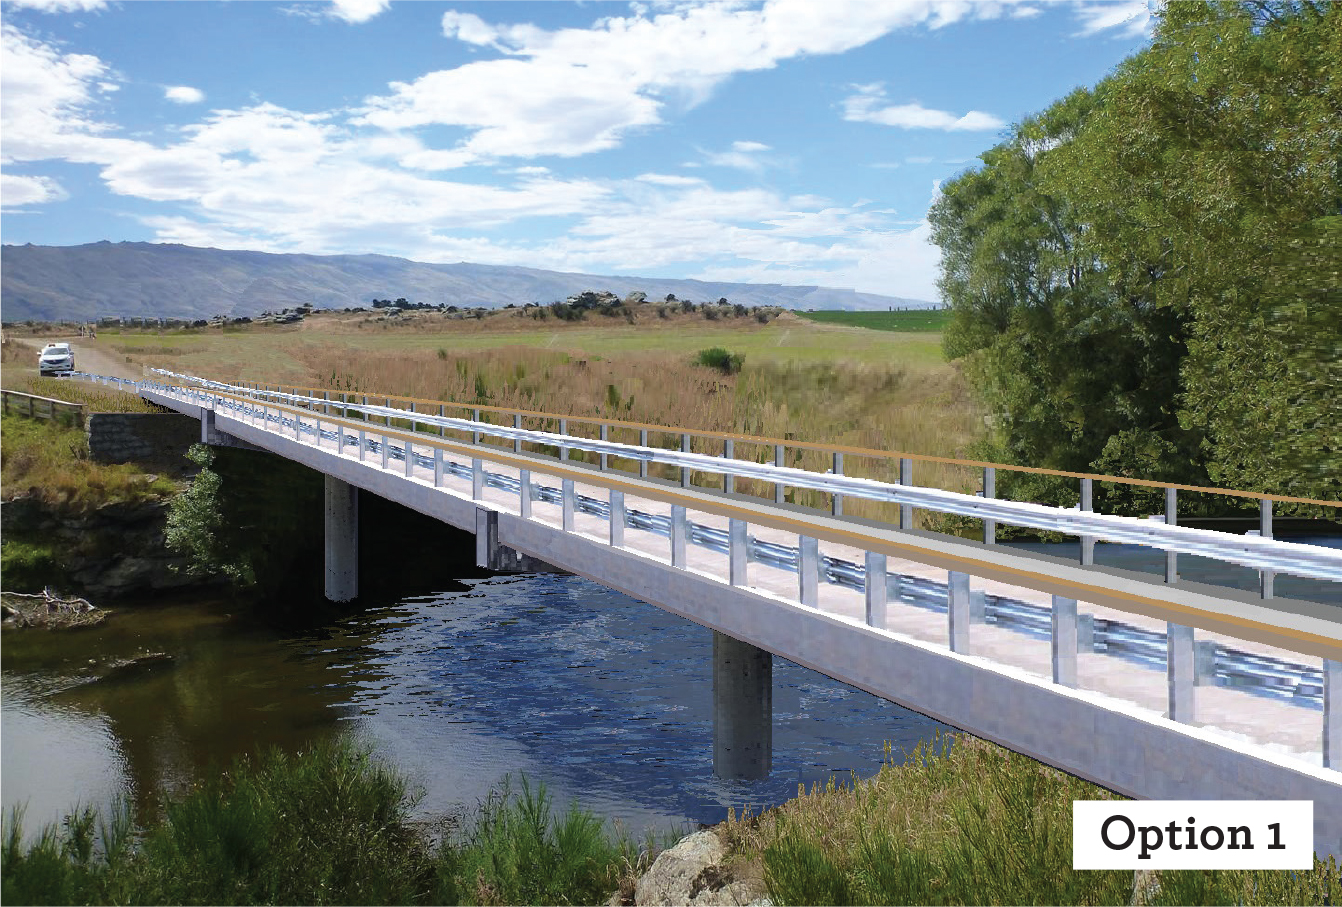 SAME SITE: The first option is for the new bridge to be built where the former bridge was, with...